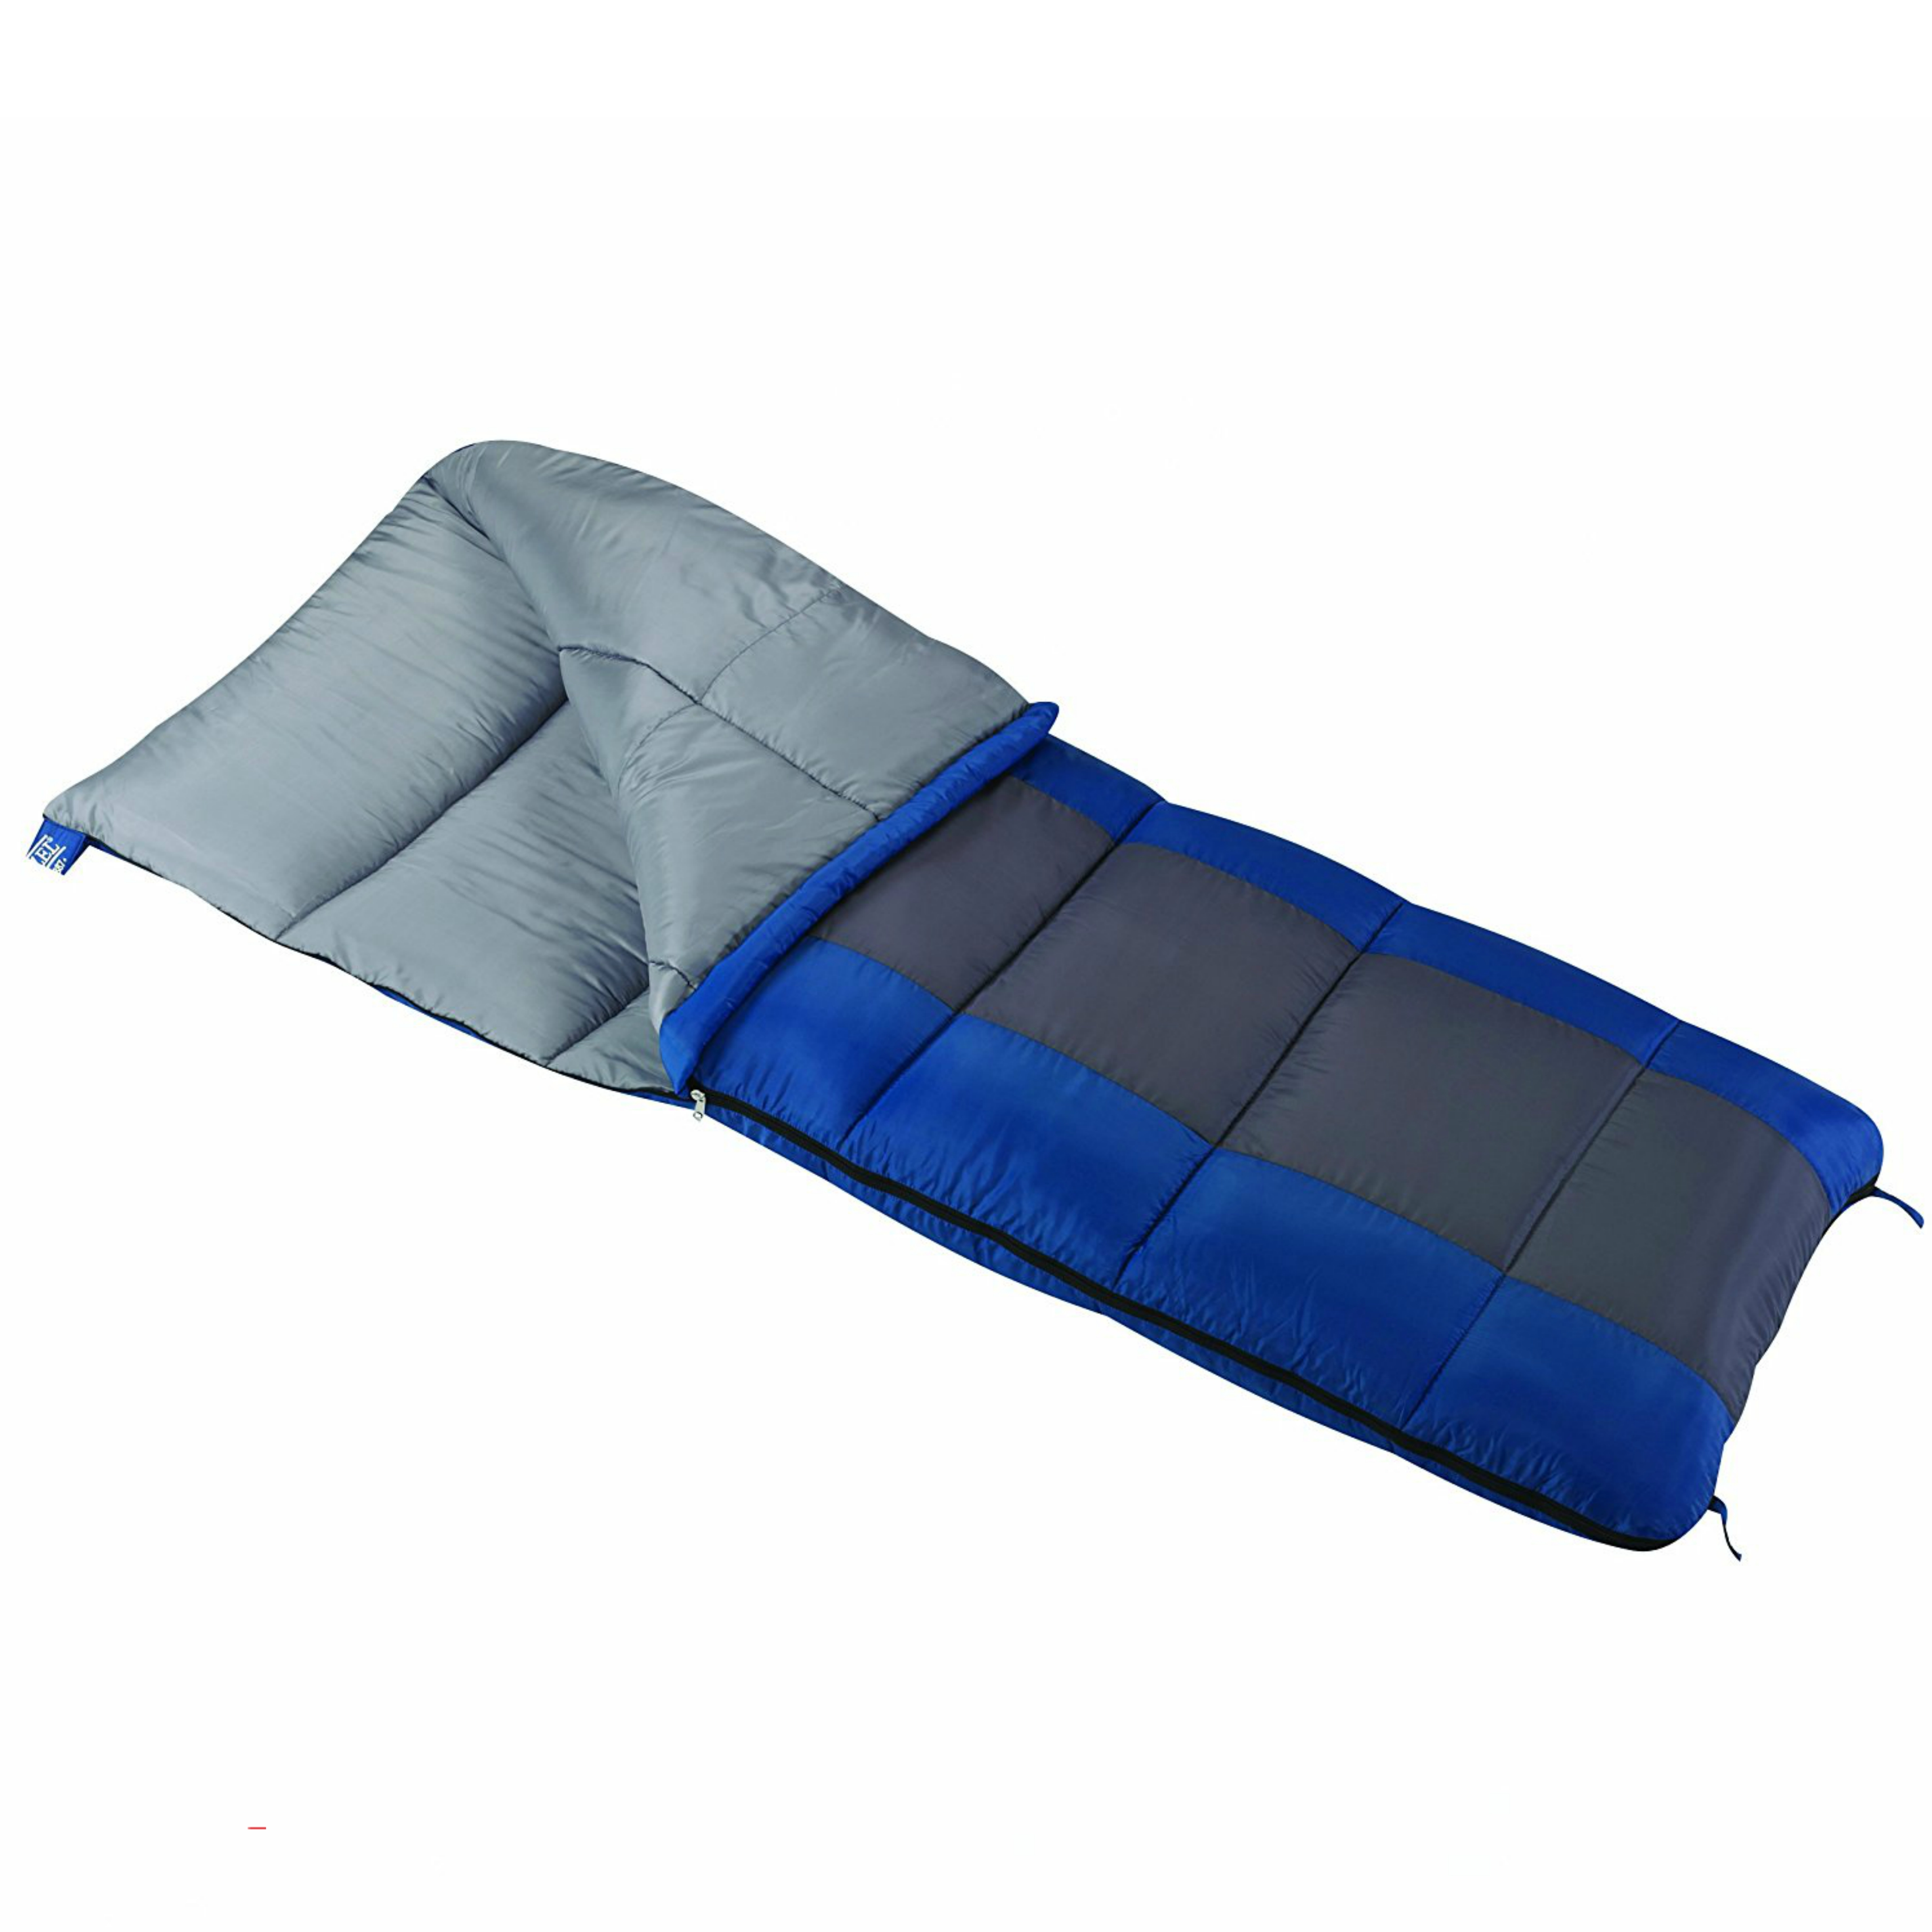 Wenzel Sunward 30° Sleeping Bag - 4lb - Regular - Blue/Gray